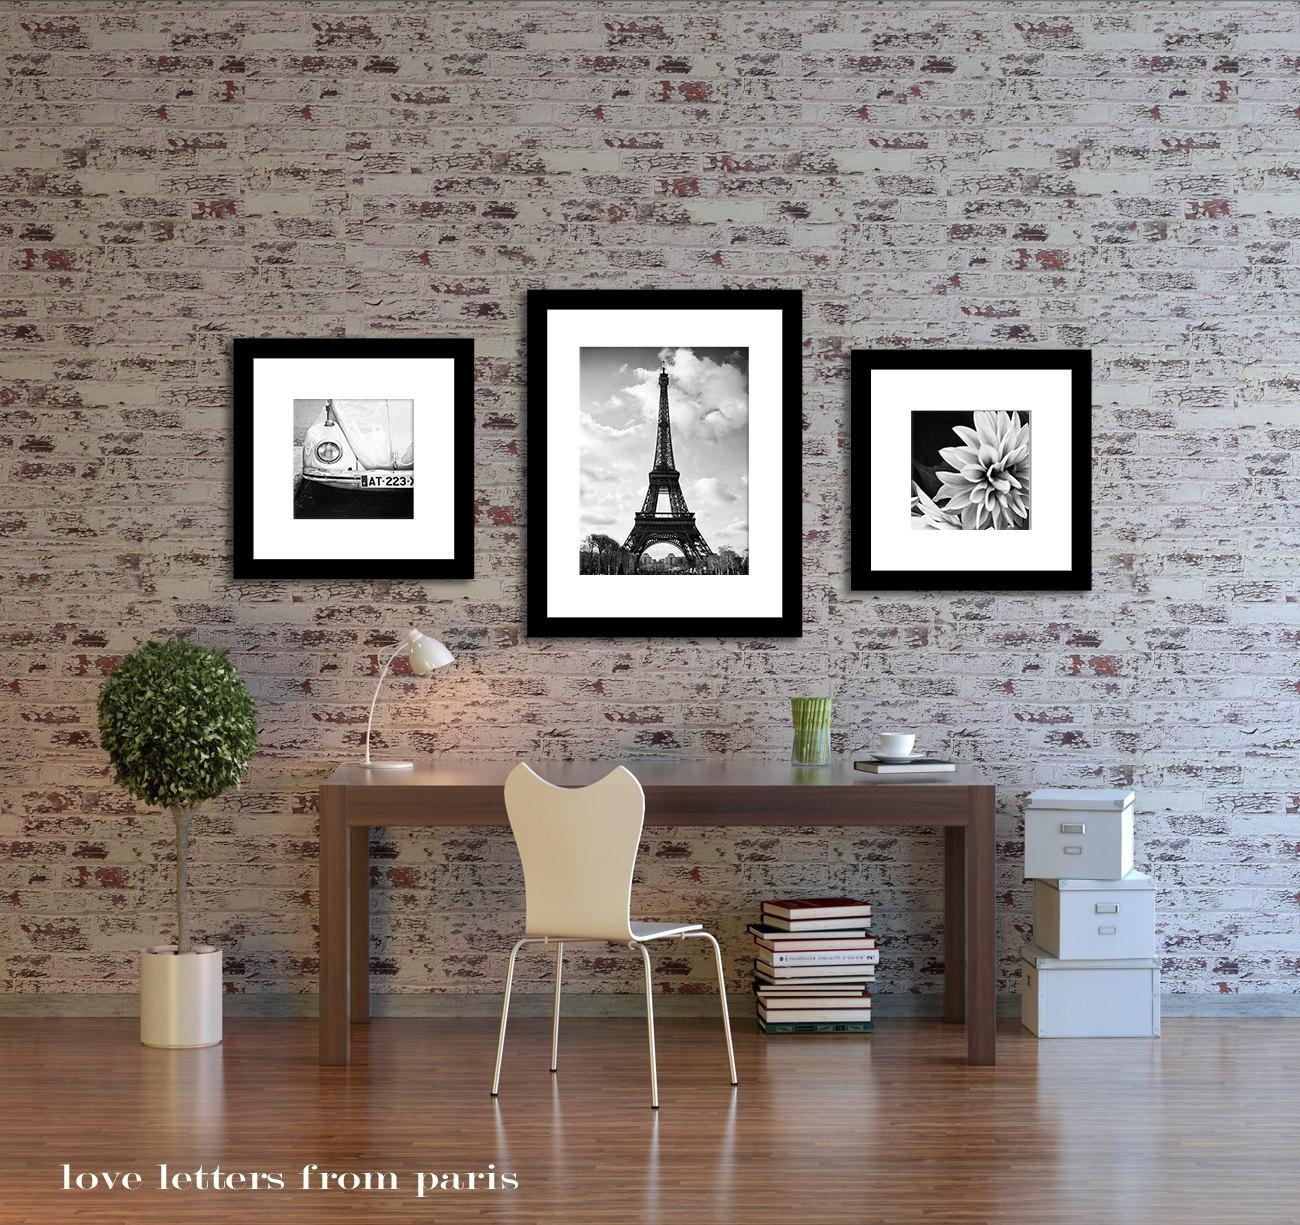 Wall Decor Photography Entrancing Design Ideas Top Parisian Home Pertaining To Paris Theme Wall Art (Image 20 of 20)